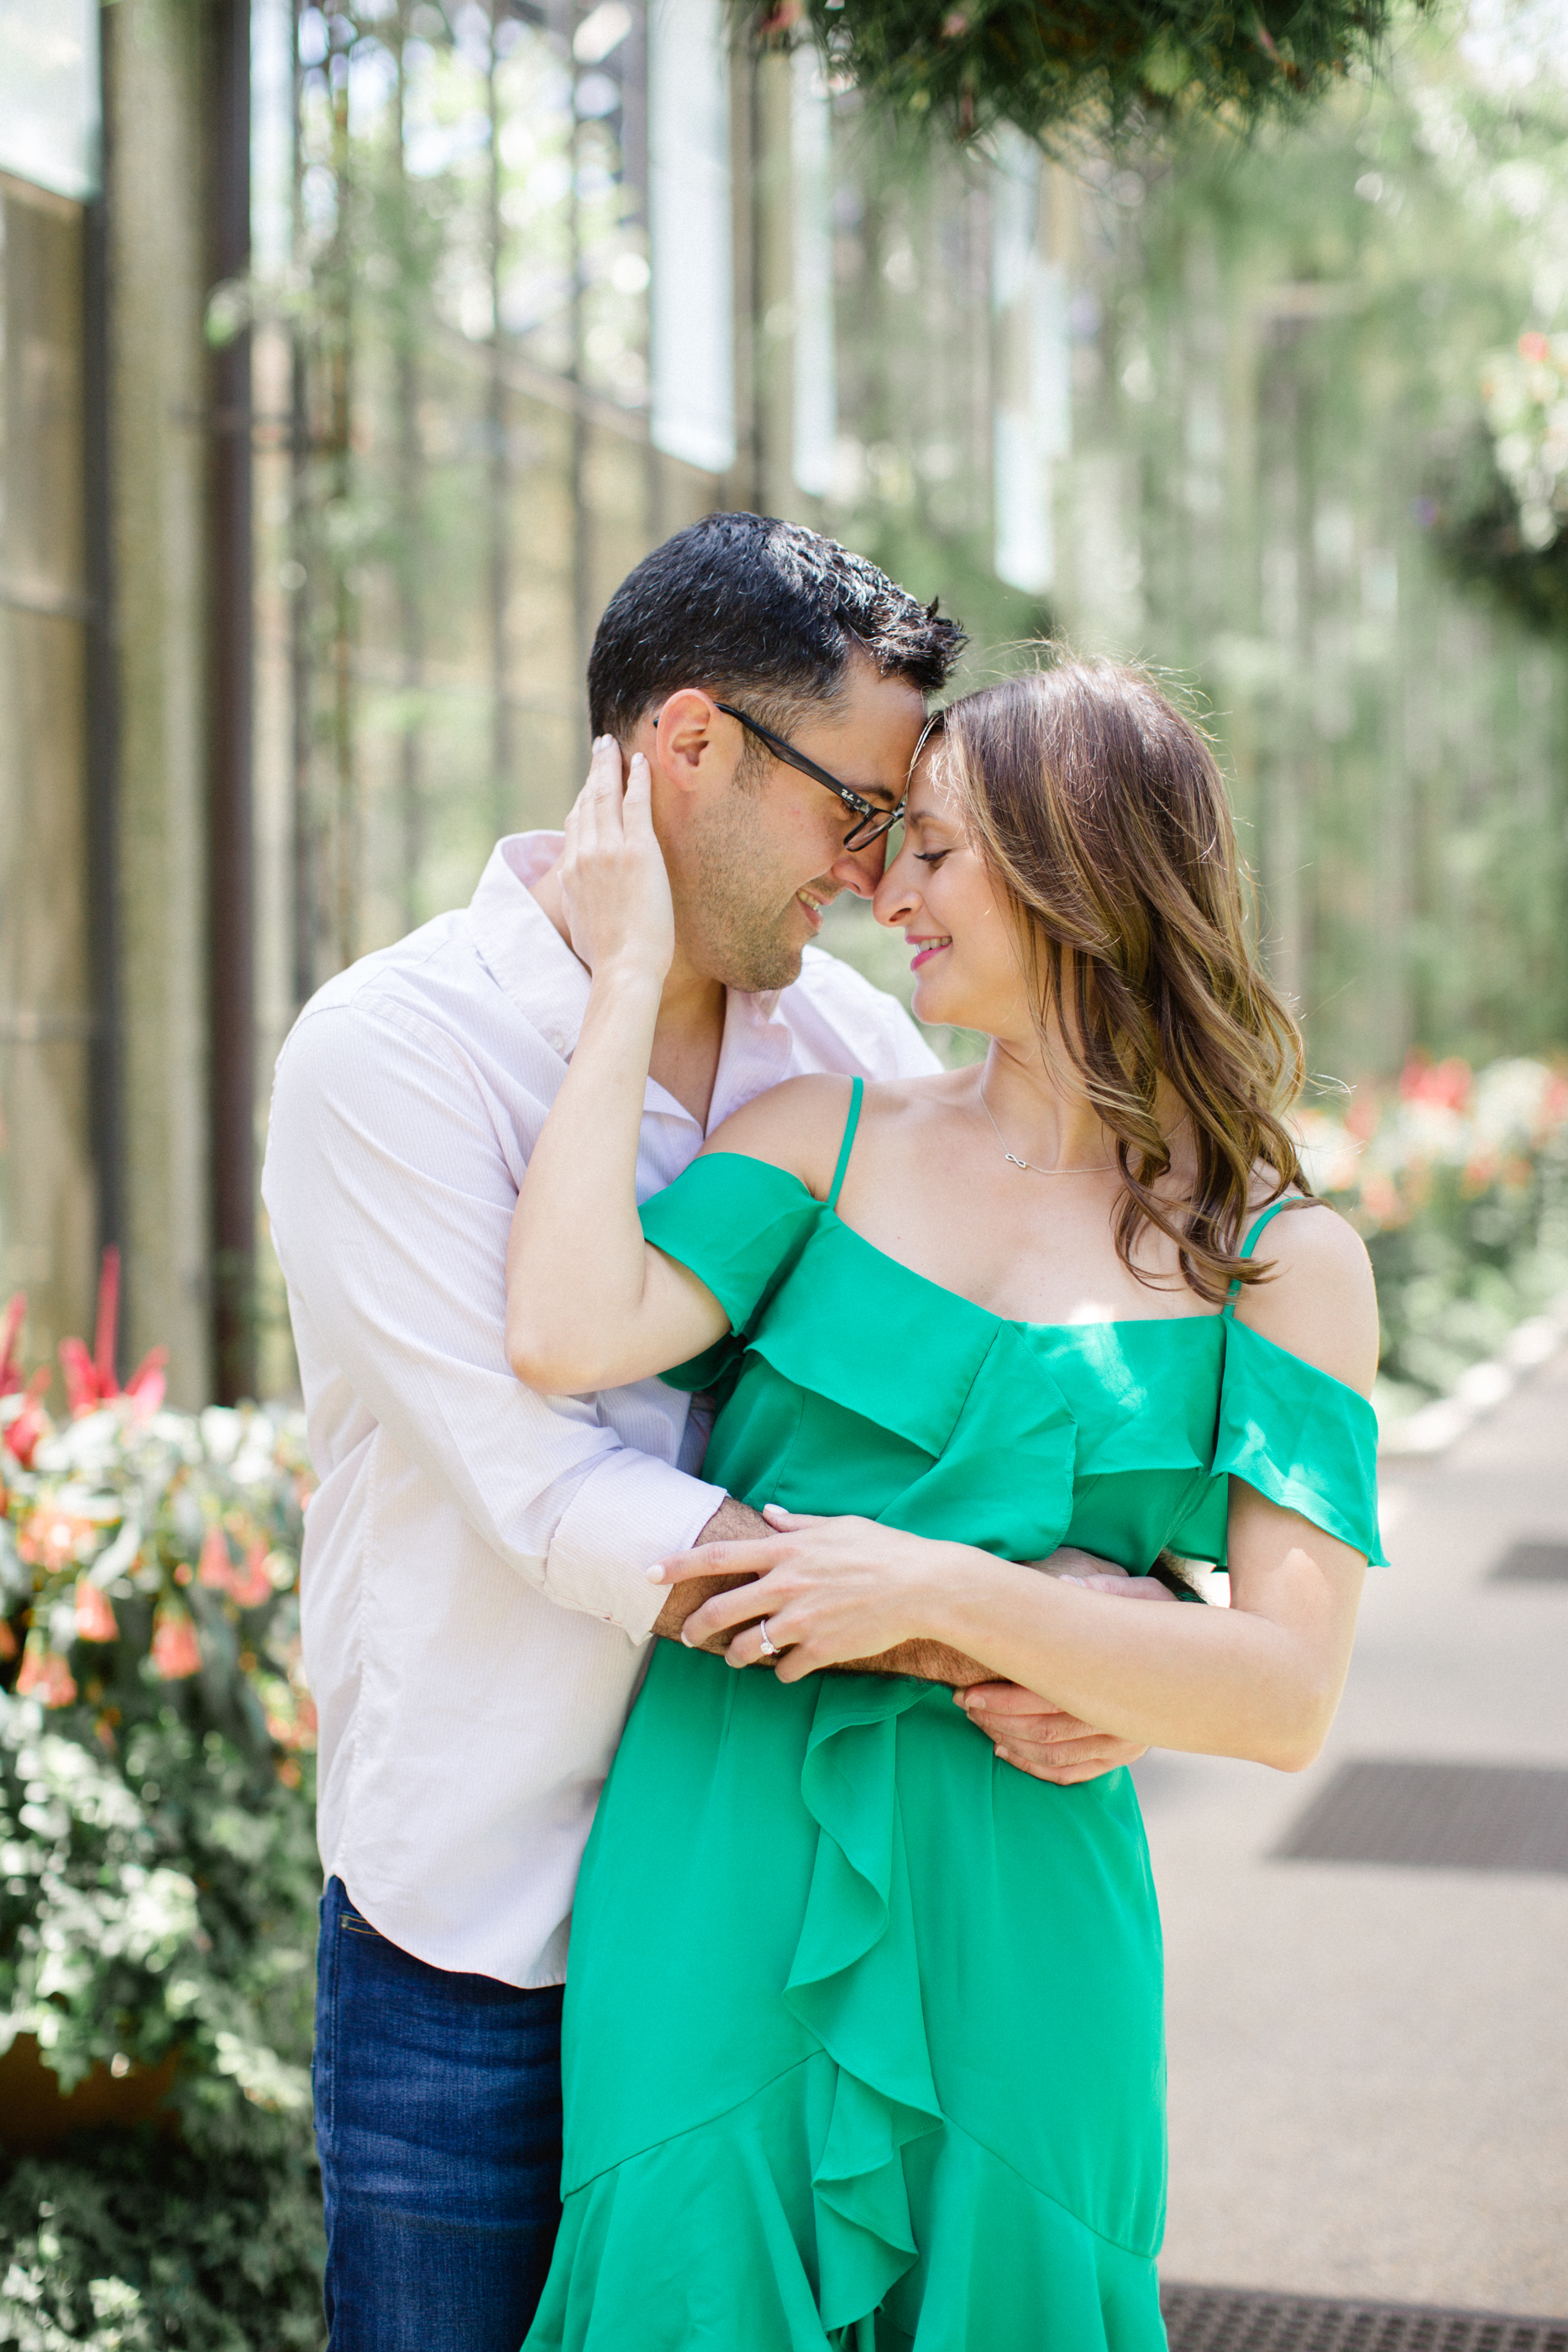 Longwood Gardens Engagement Session Photos_JDP-56.jpg